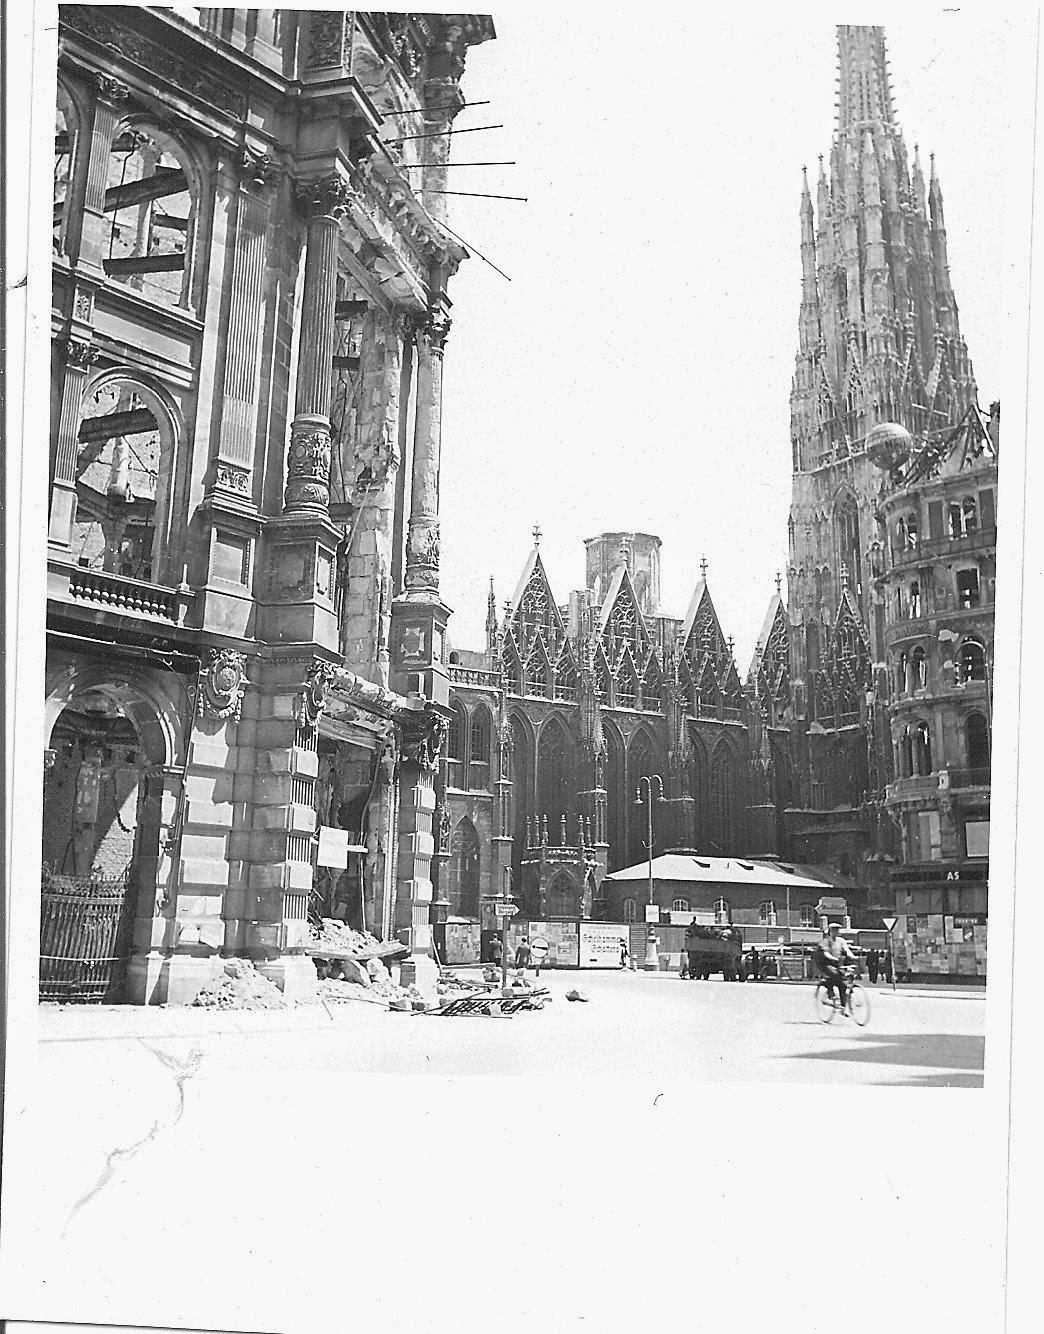 Photo Of Stephensplatz St Stephens Church Without A Roof